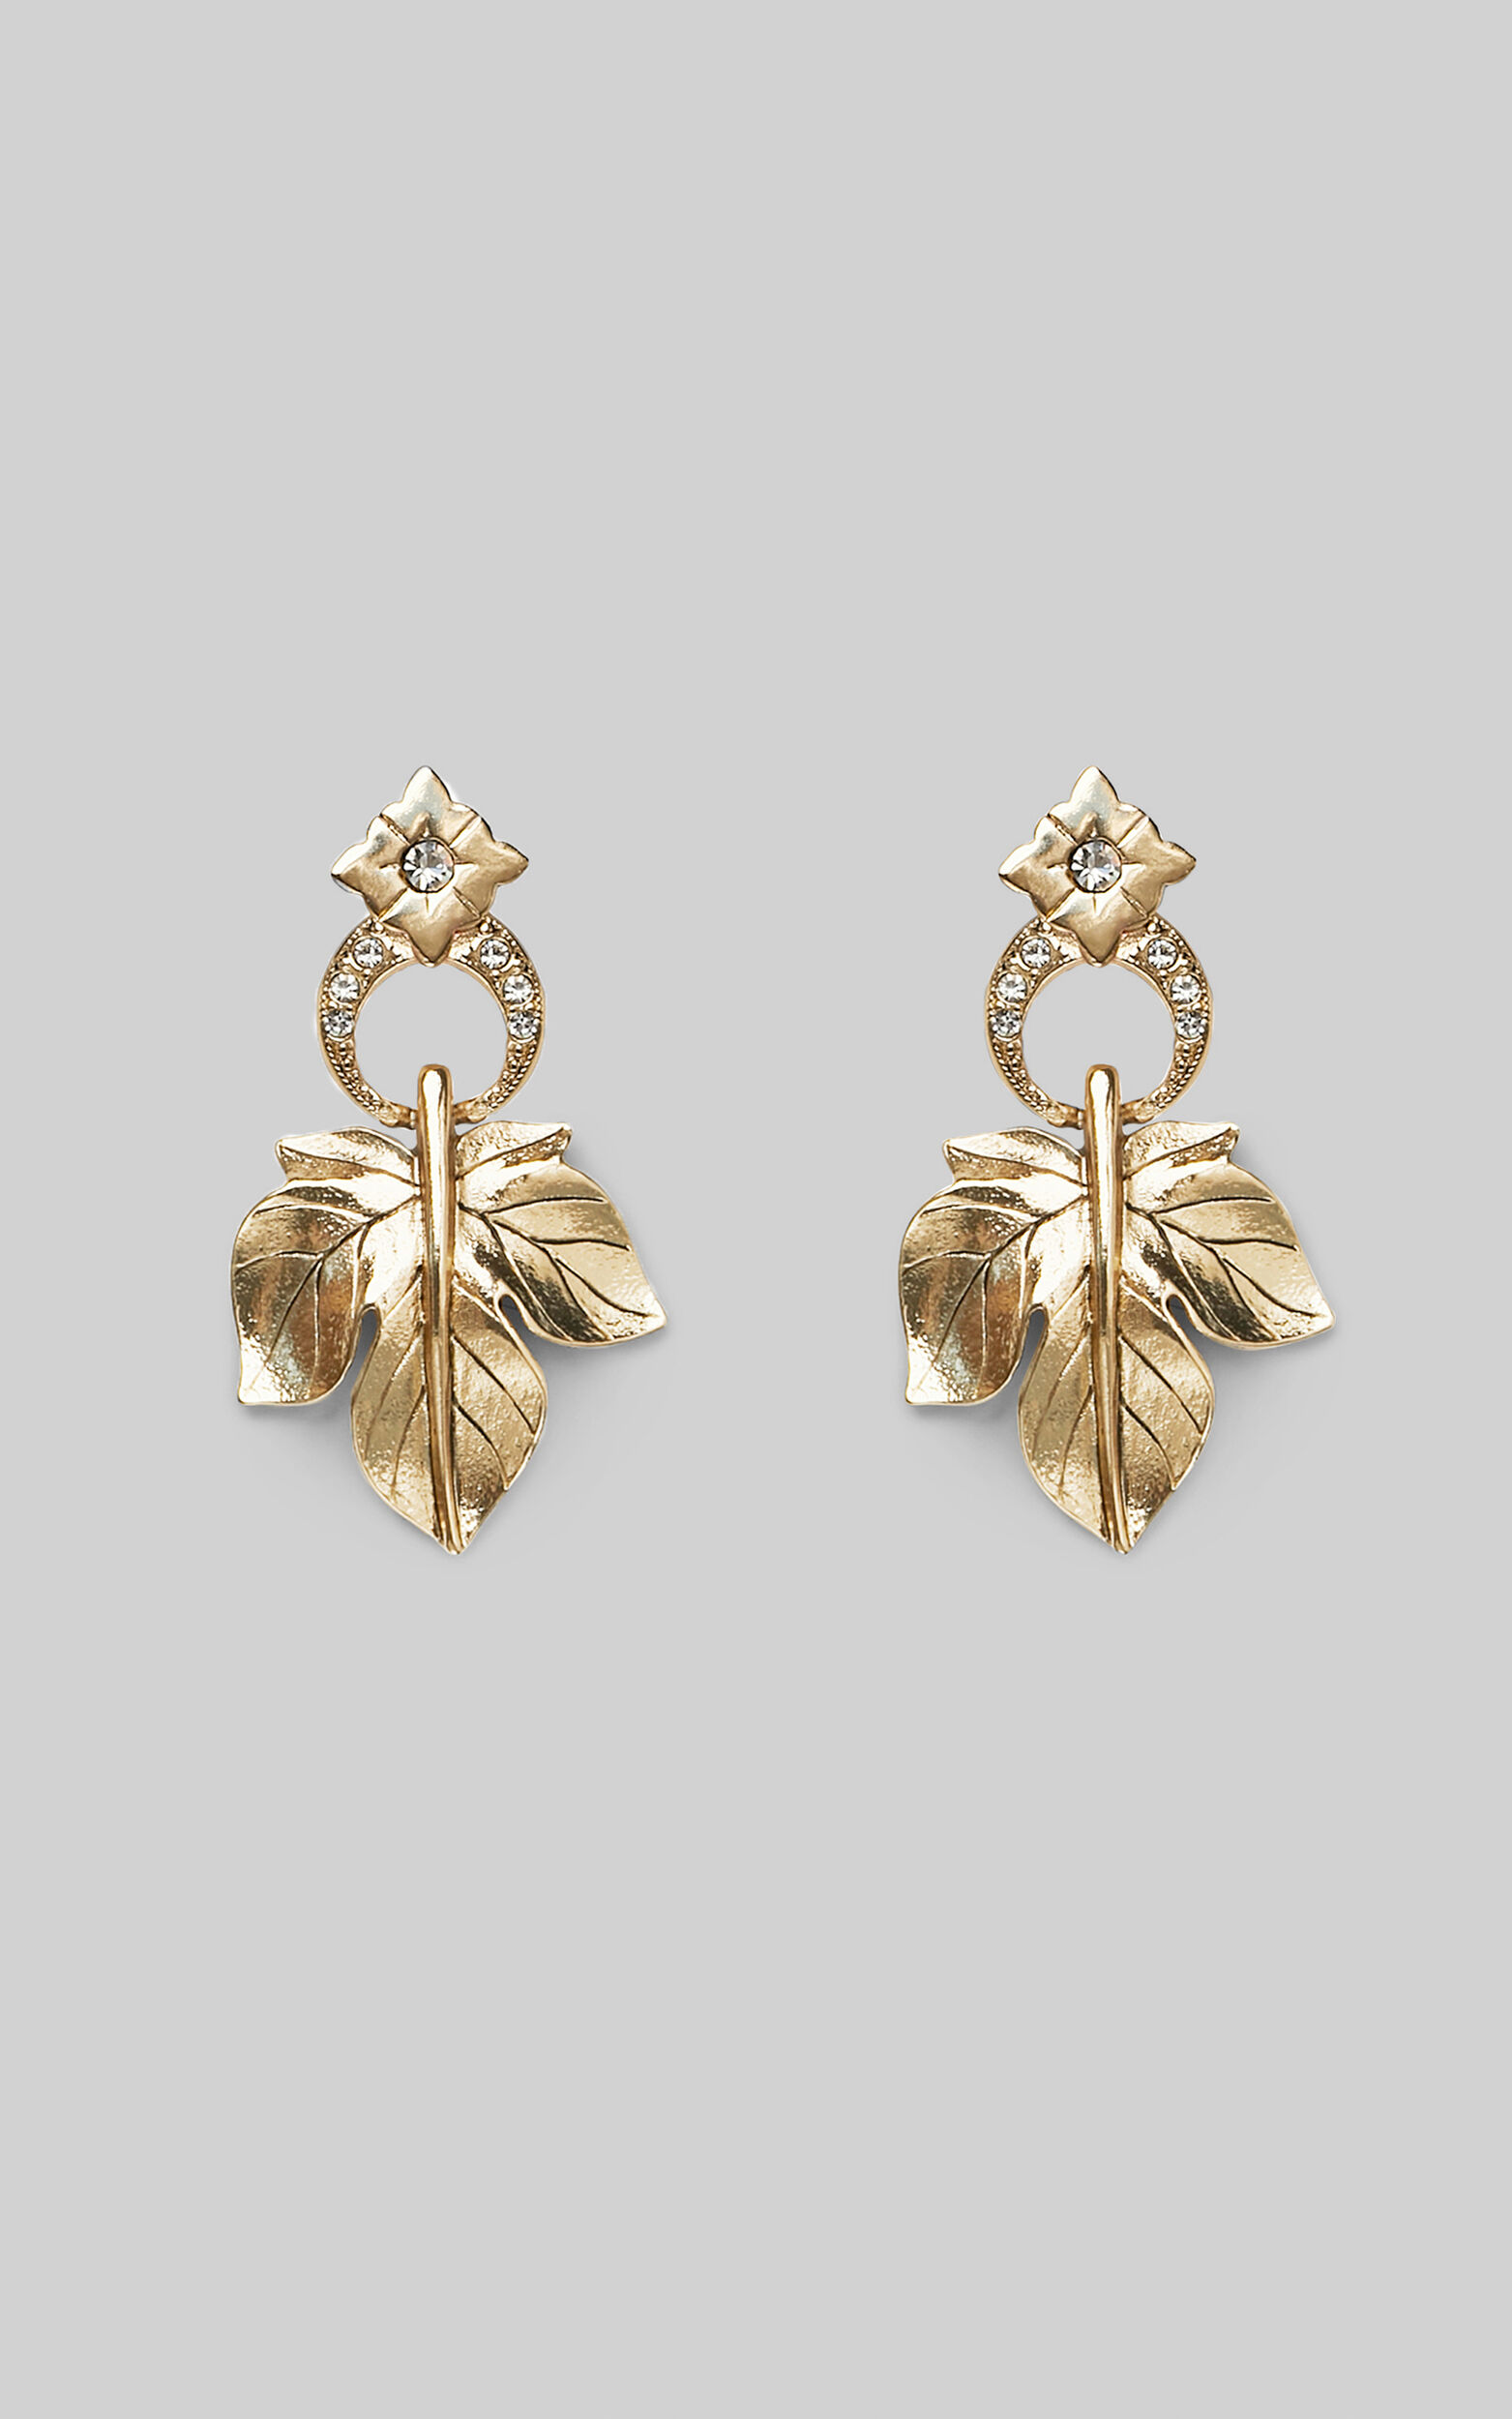 KITTE - Ambrosia Earrings in Gold - NoSize, GLD1, super-hi-res image number null